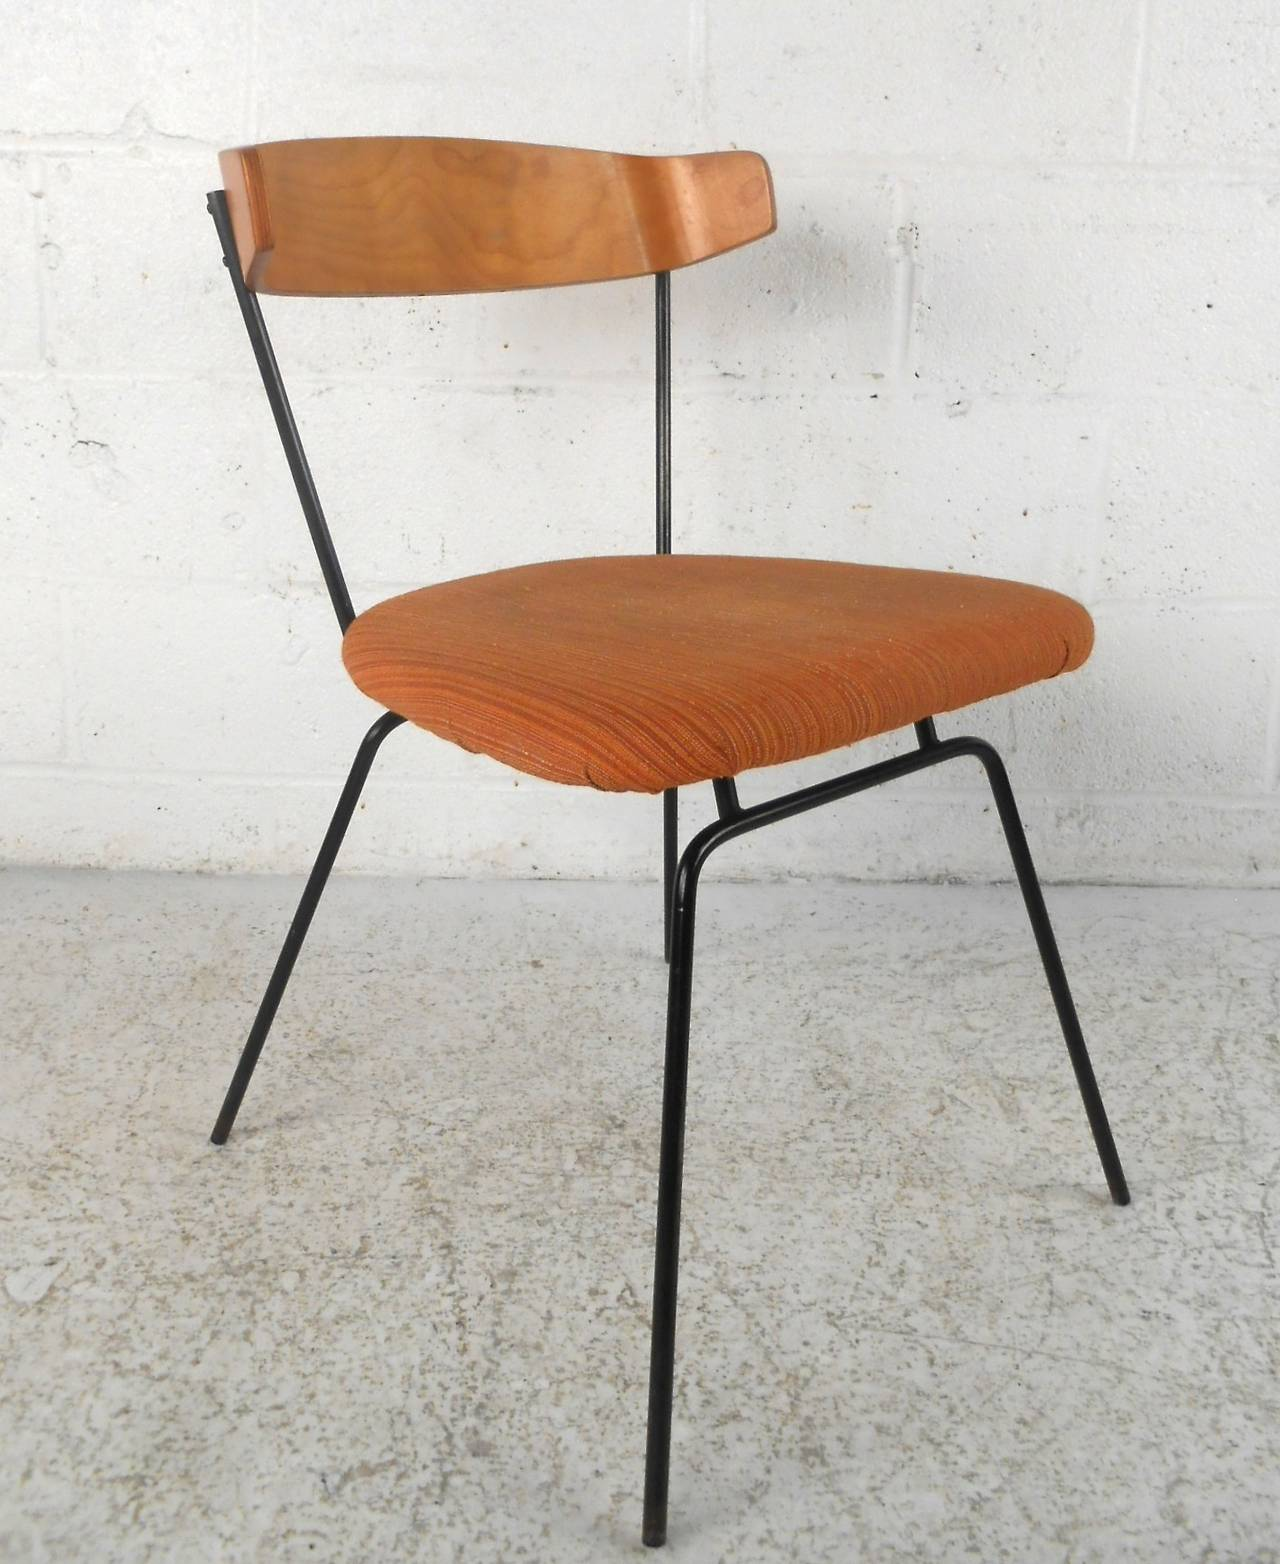 Charmant This Uniquely Shaped Dining Chair Features Bentwood Seat Back, Sturdy Cast  Iron Frame, And